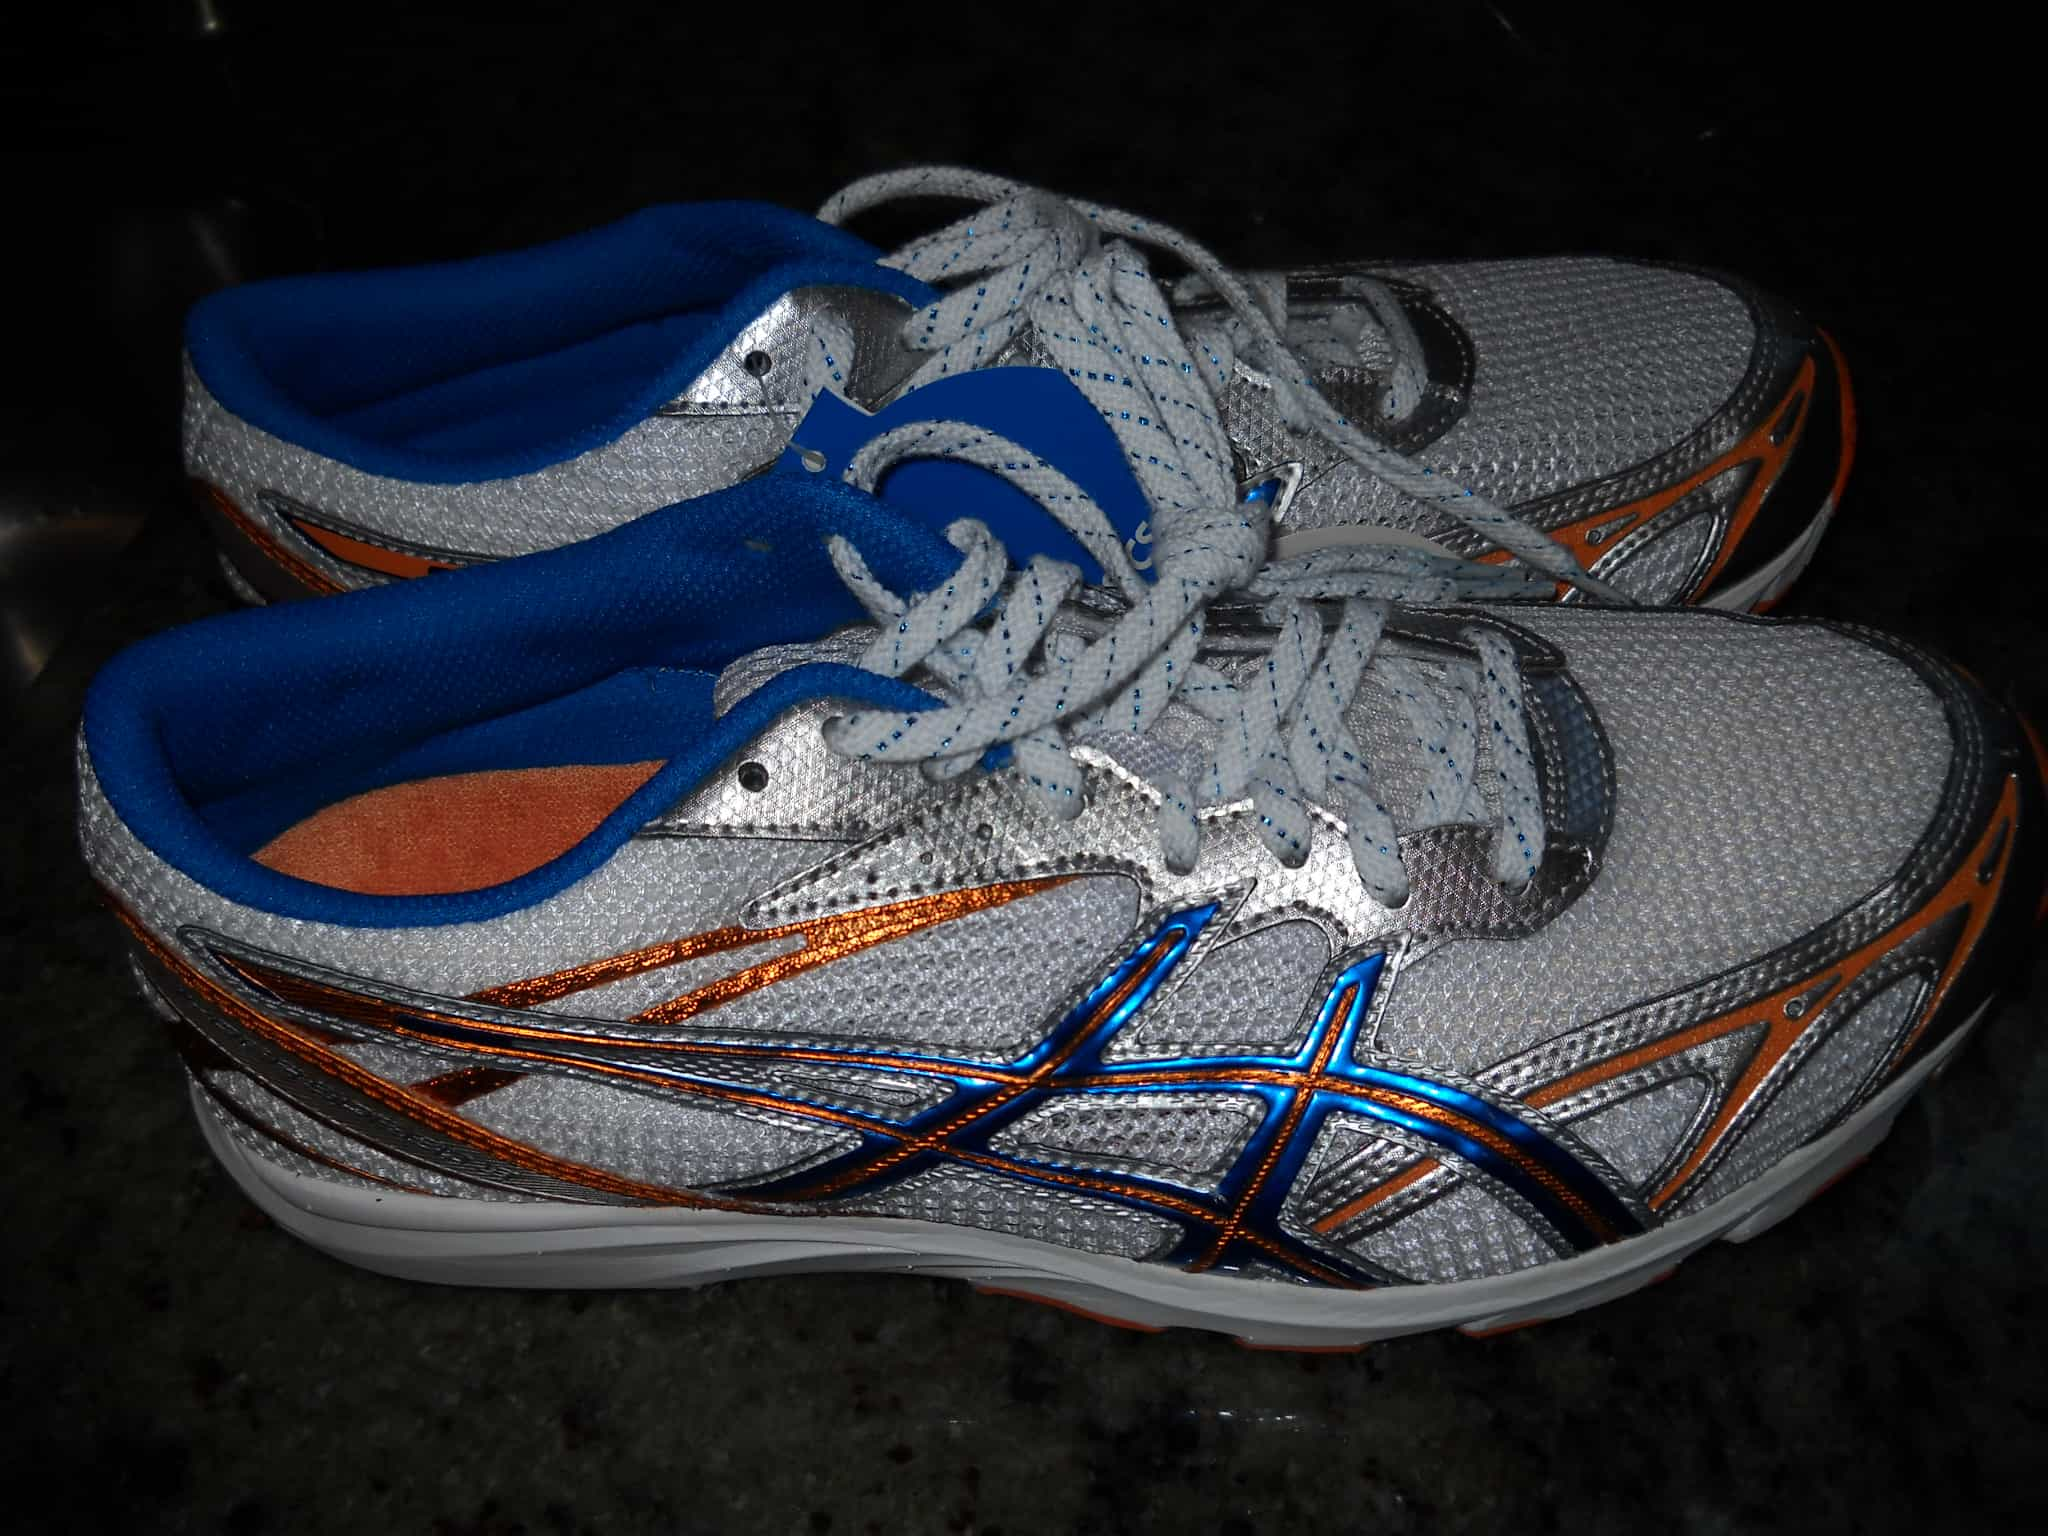 asics race walking shoes